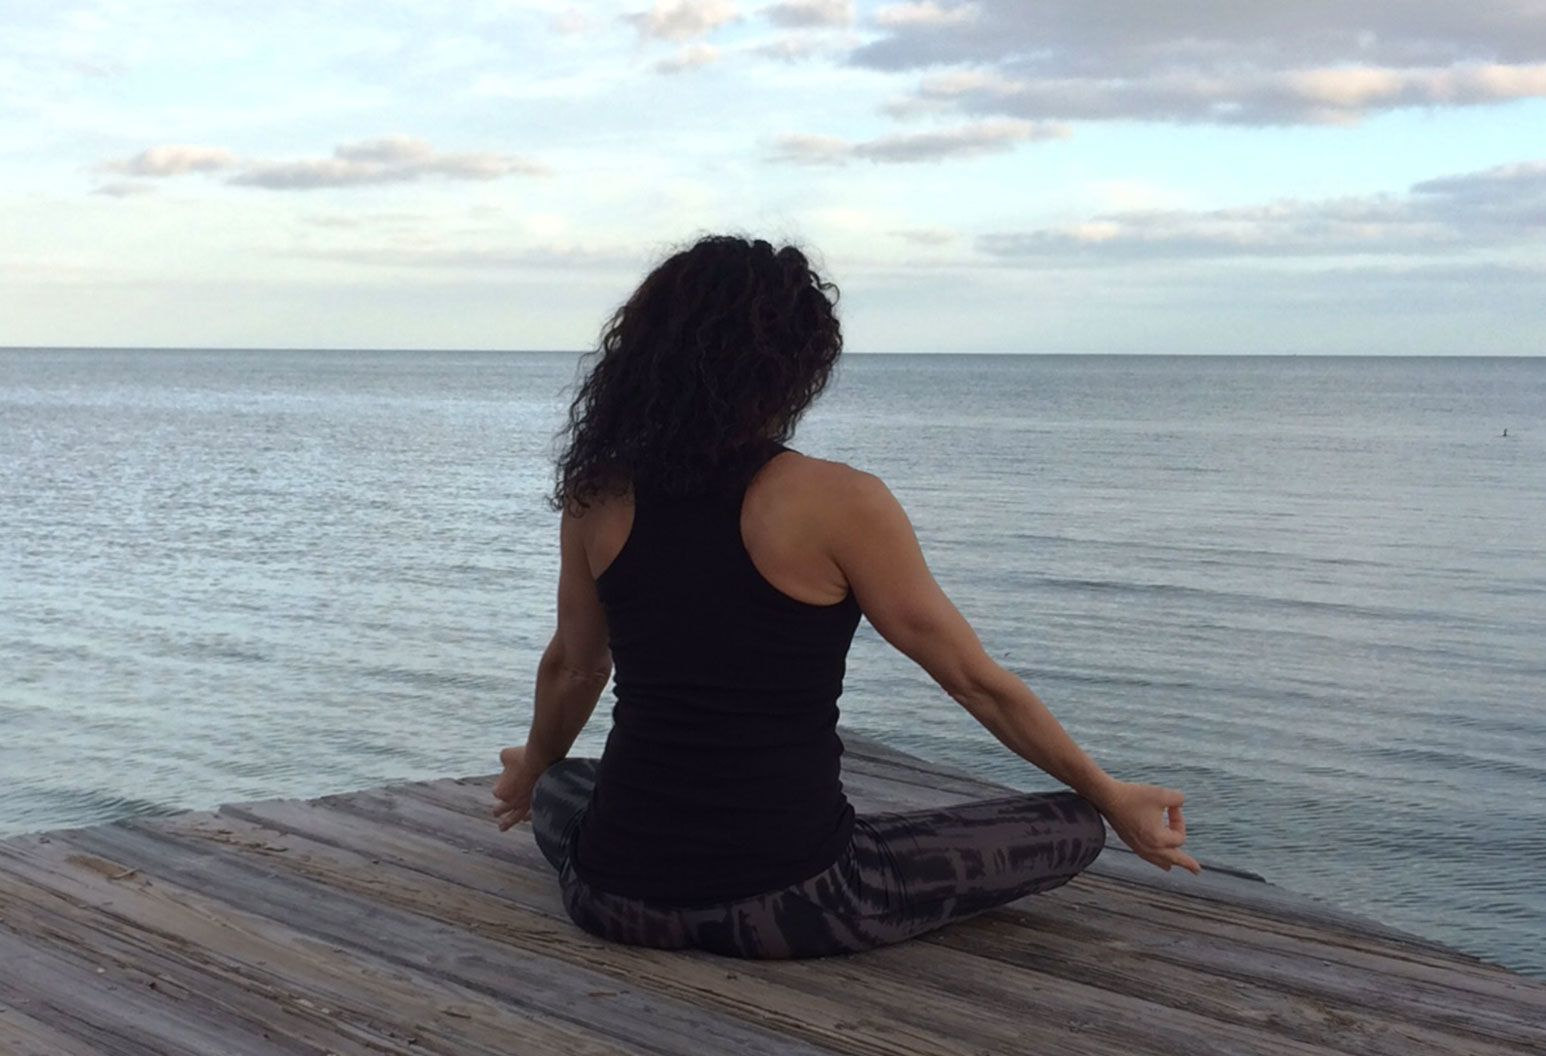 A woman sits on a wooden pier by the water. Her back towards the camera, she sits in a meditative position with her hands stretched to her knees as her black hair flows in the wind.